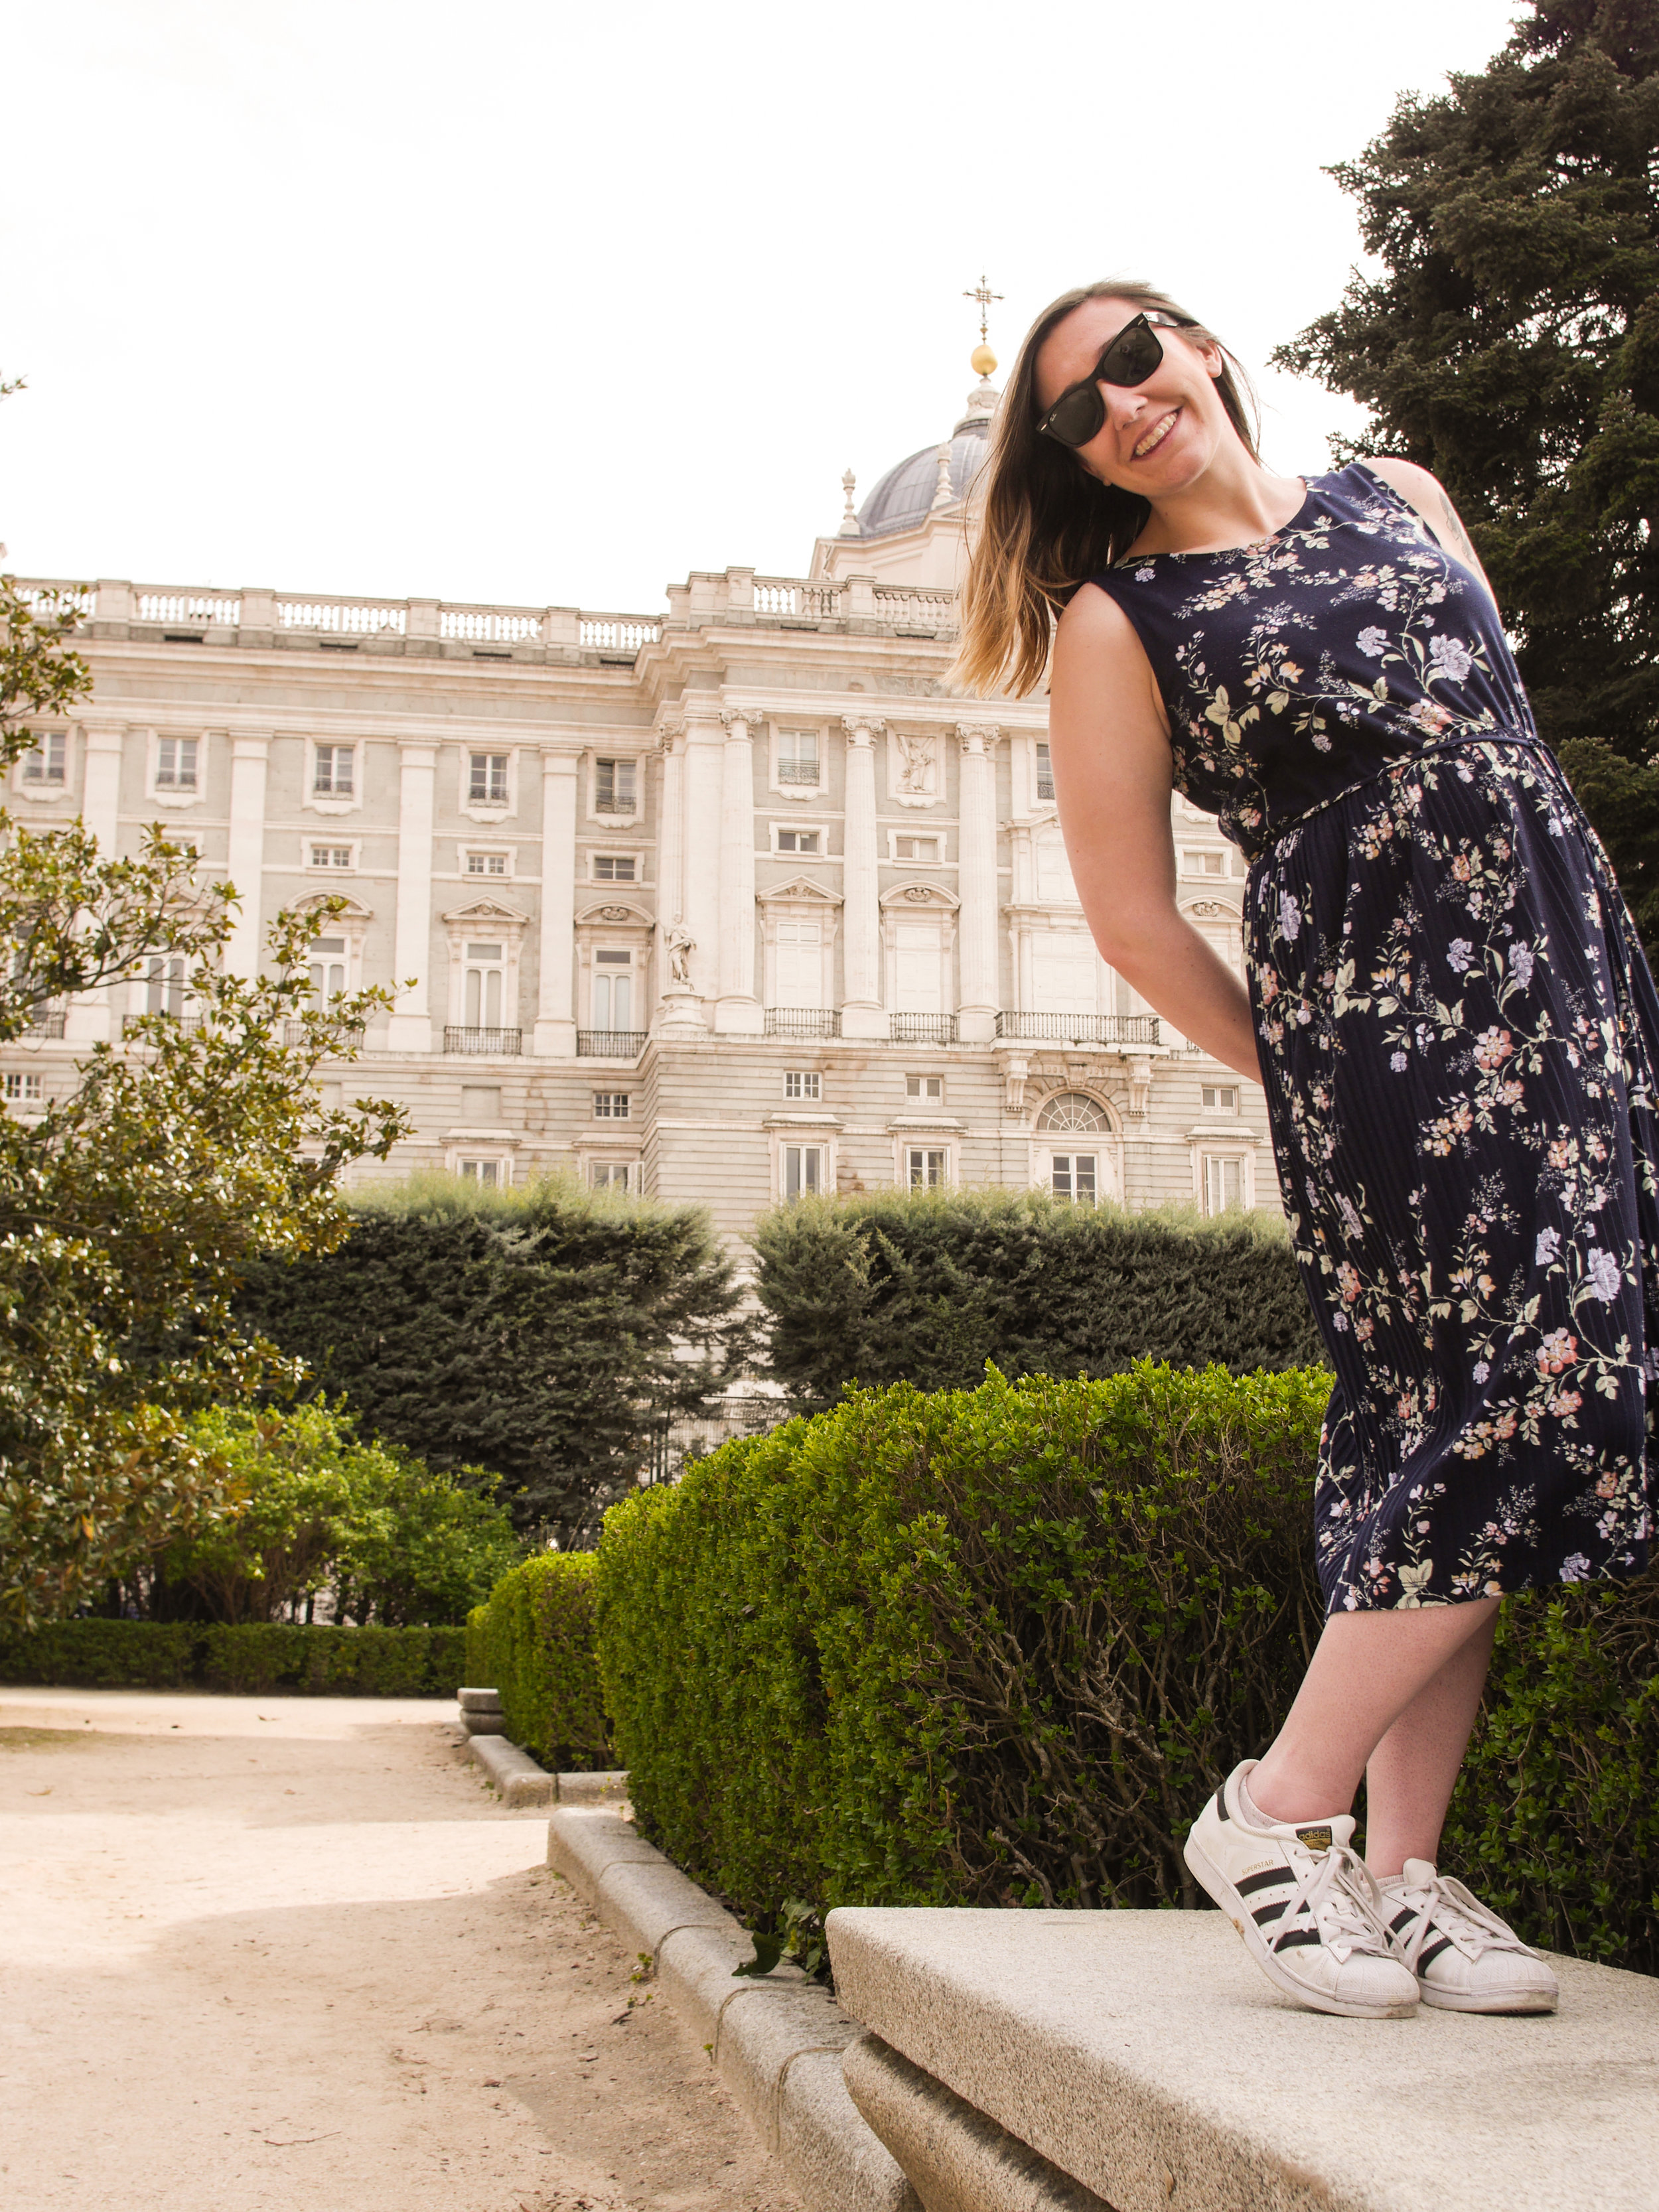 Candid Alexandra in front of the Royal Palace of Madrid in Madrid, Spain